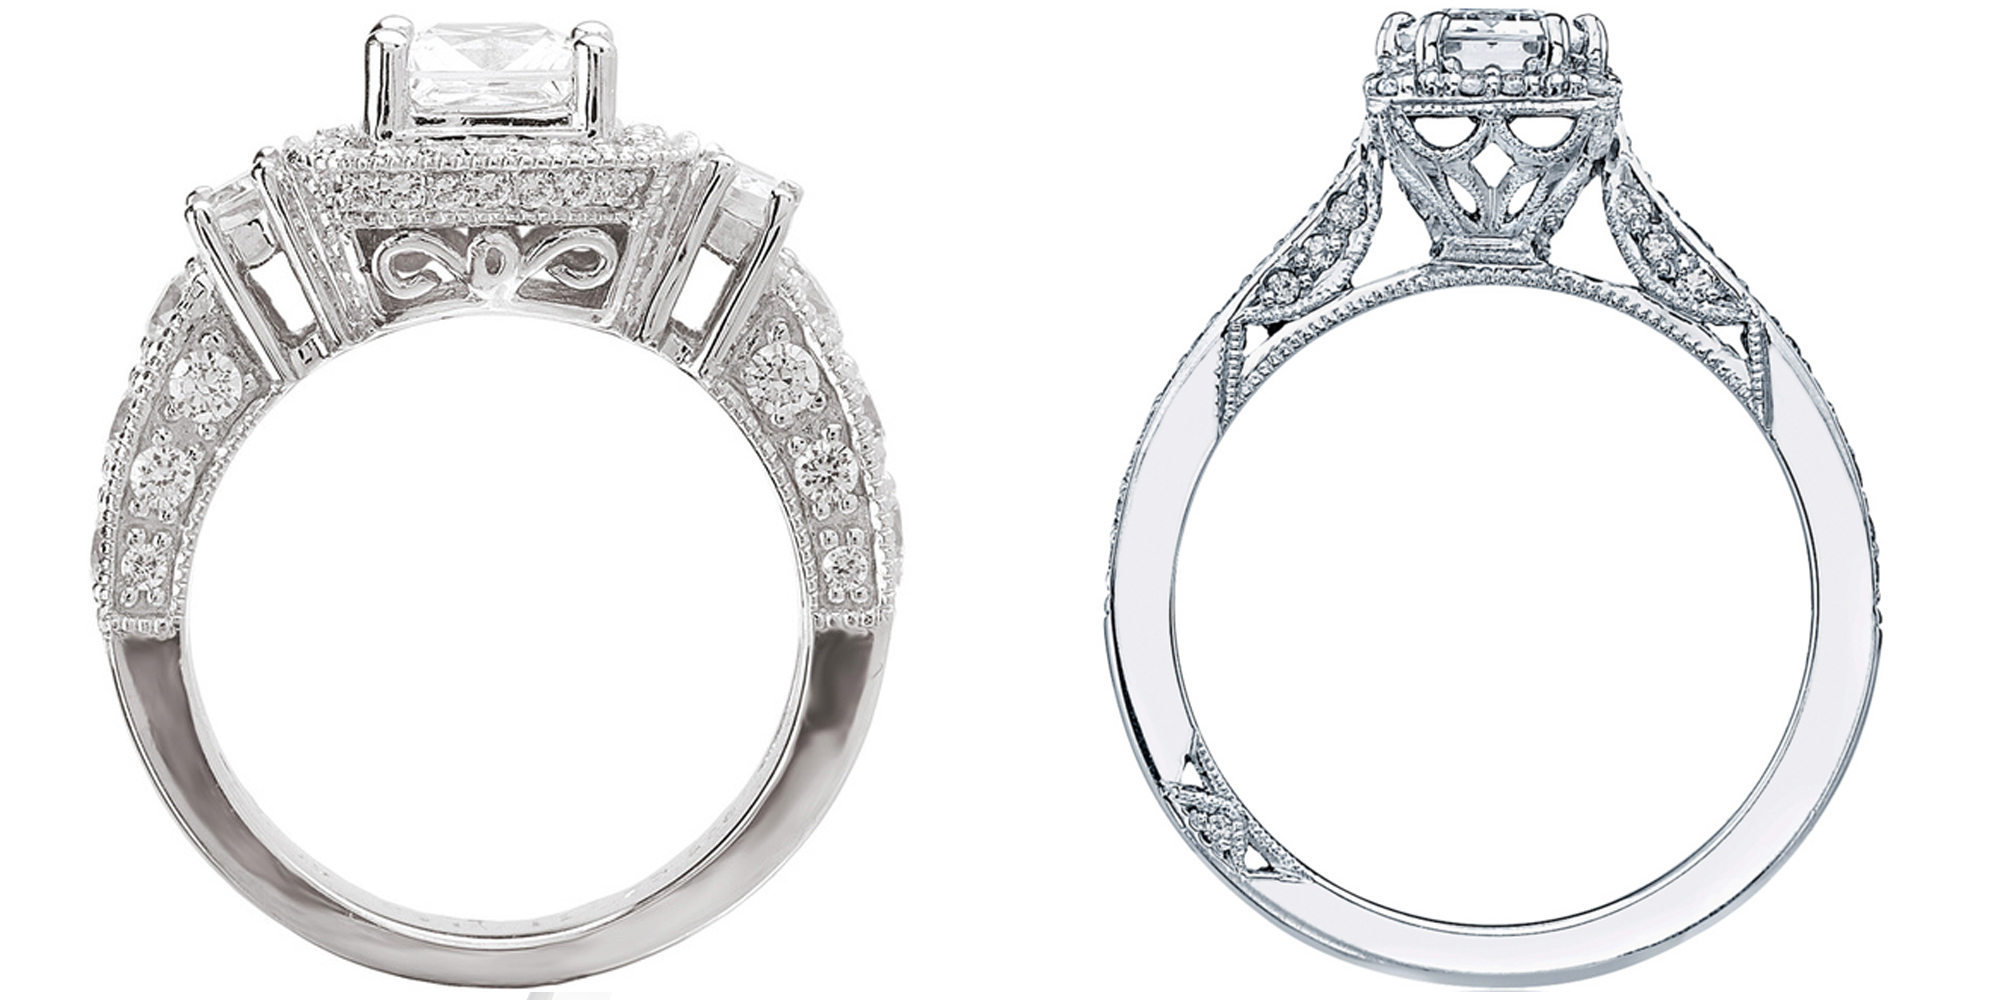 QUIZ Can You Tell The Difference Between A Cheap Engagement Ring And An Expensive Engagement Ring